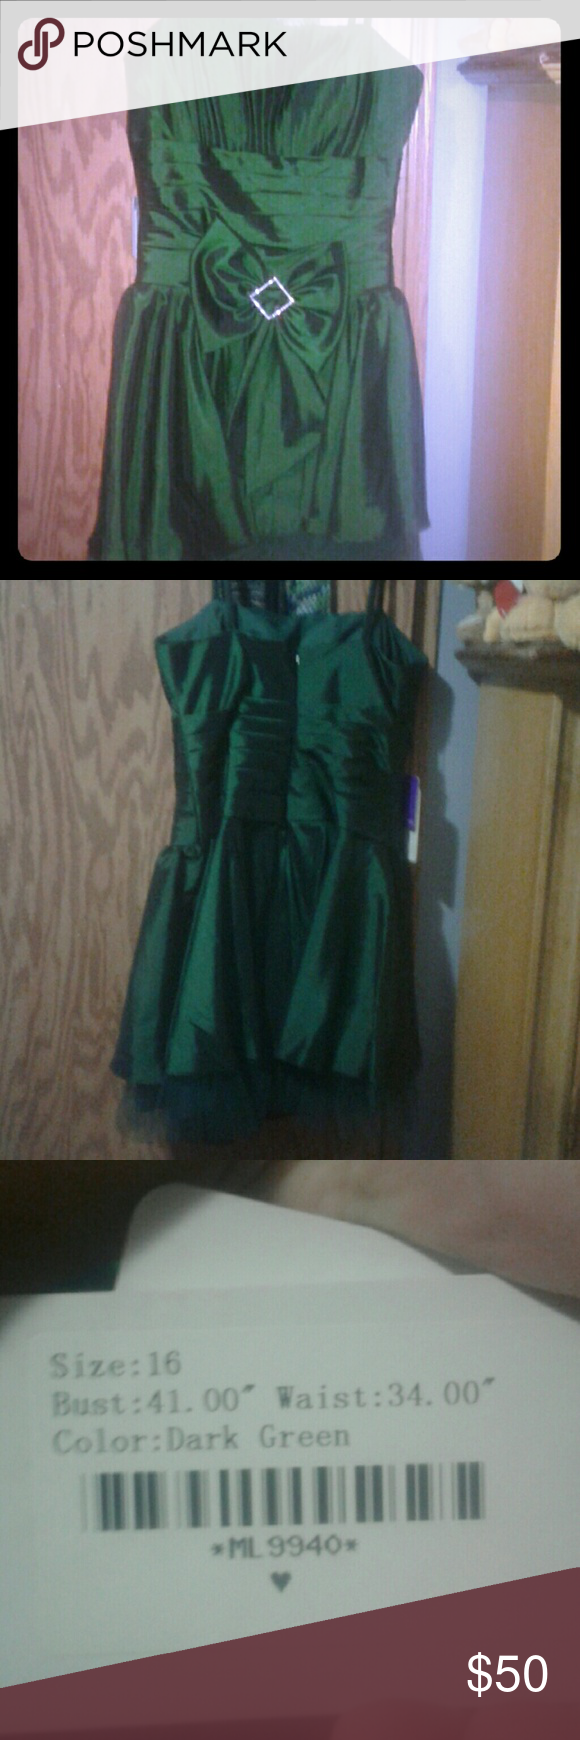 Emerald Green Dress Never Worn Size 16 Dress It Was To